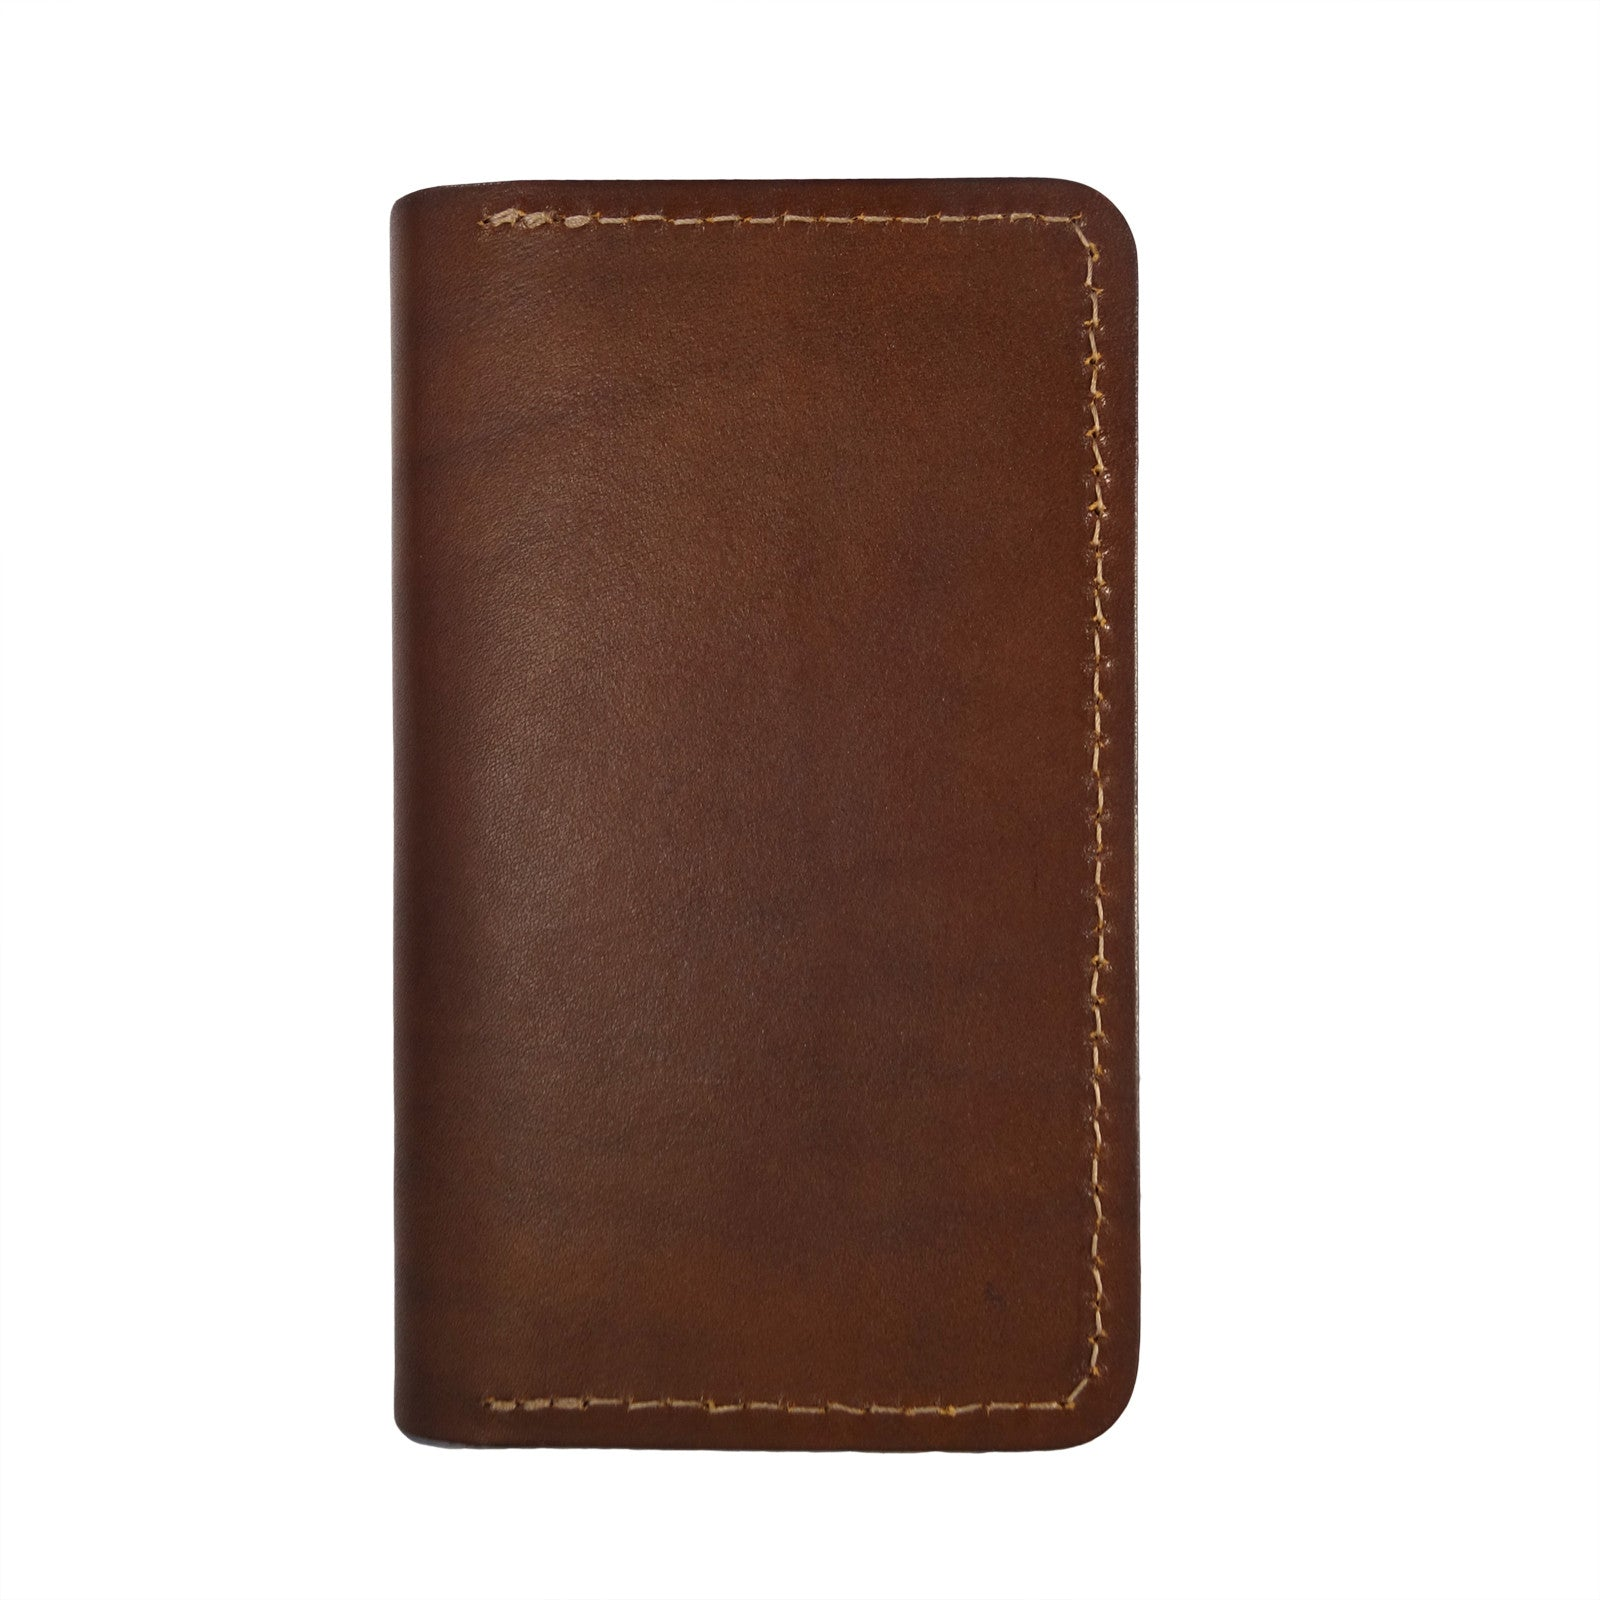 iphone wallet, iphone case, leather iphone case, iphone leather wallet, quality iphone case, the slim book, theslimbook, A leather wallet, an iPhone case, and sketchbook all in one. theSLIMbook™  is designed to consolidate the many items we carry in our pockets everyday.